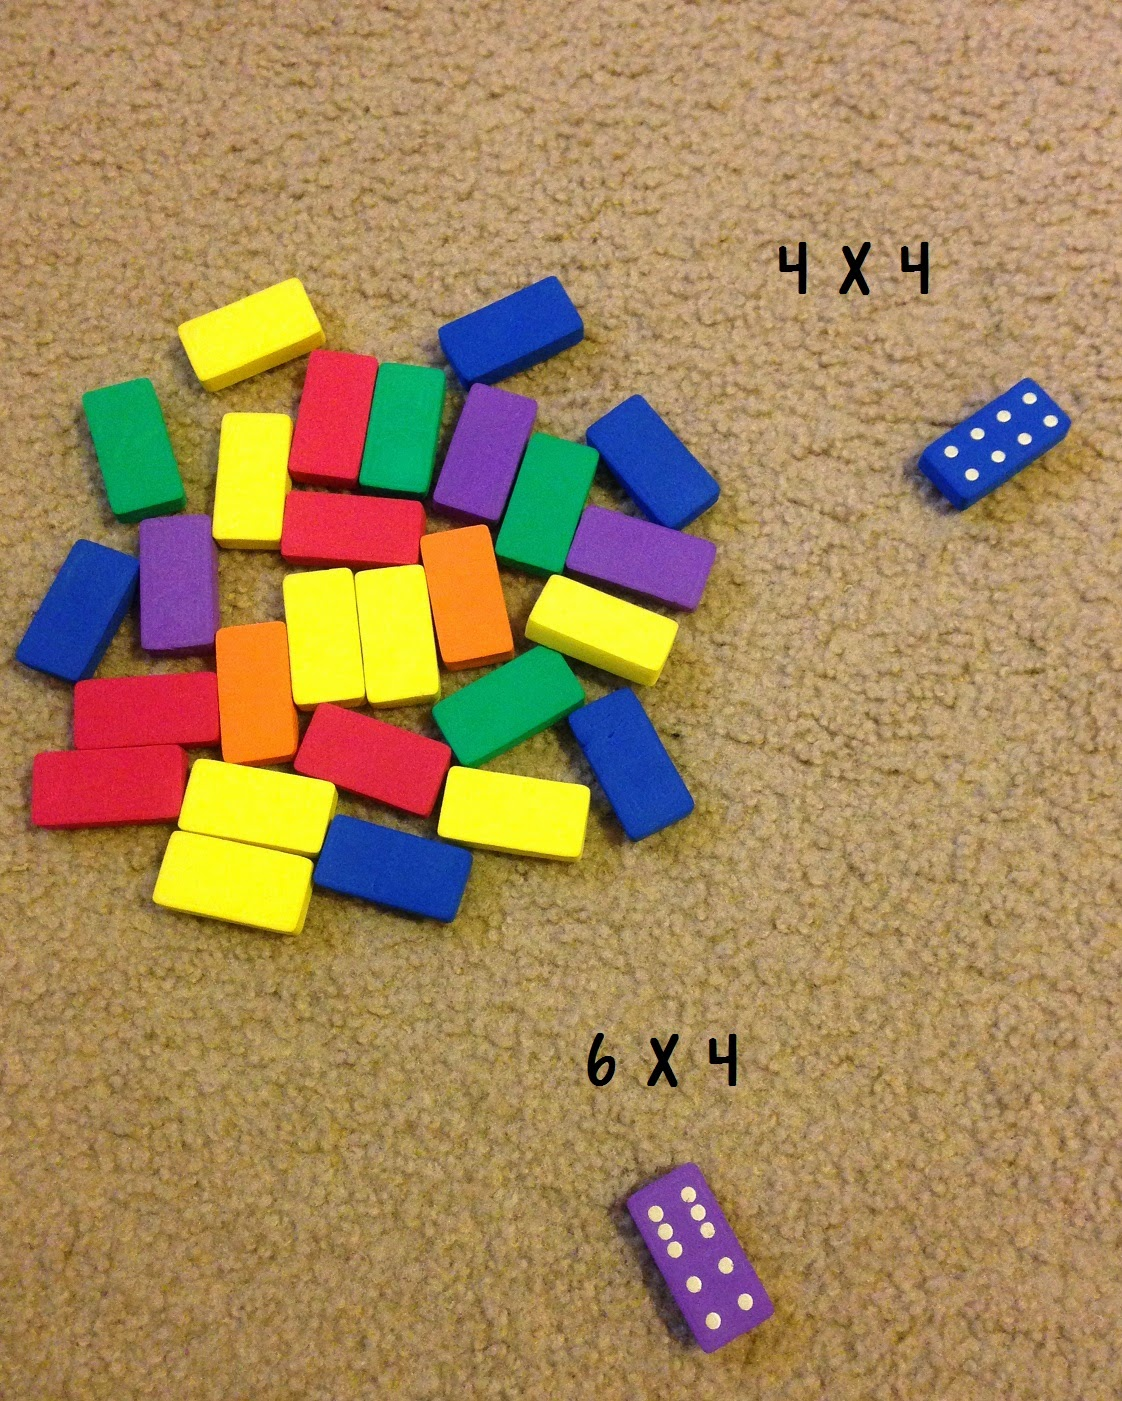 Need fun ways to practice multiplication? Here's a list of 11 fun games and activities that you can do with your class to help them strengthen their multiplication skills.